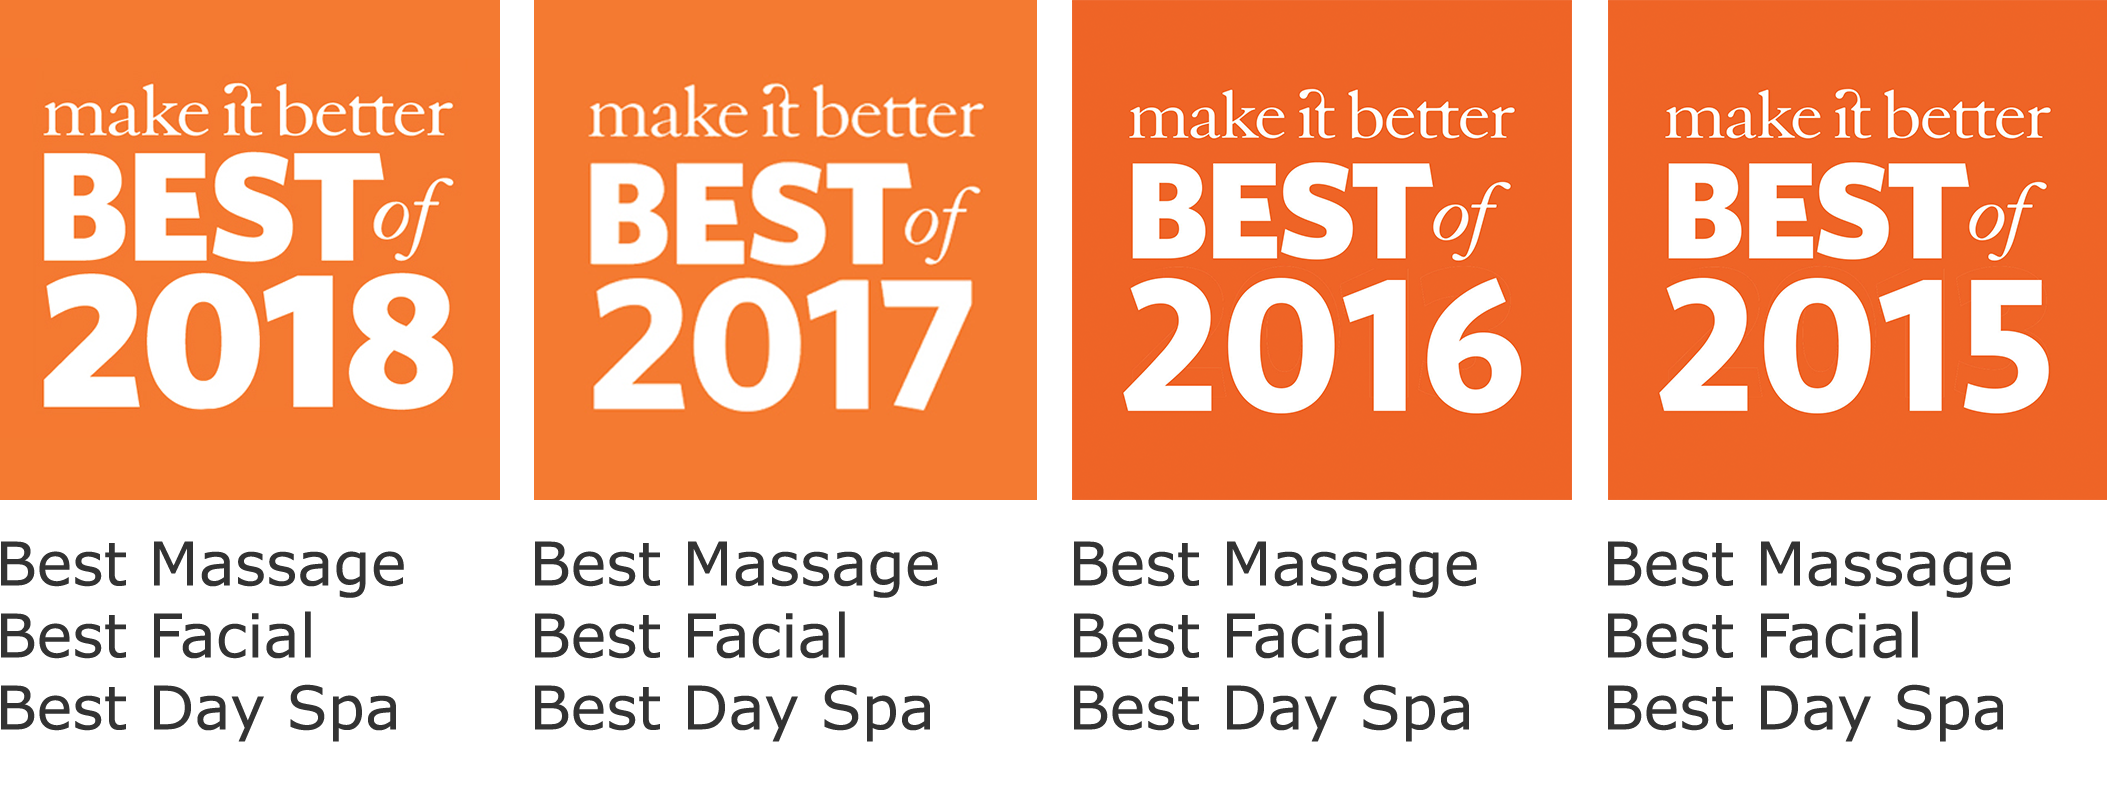 Egea Spa: Make It Better Best of 2018, 2017, 2016 & 2015